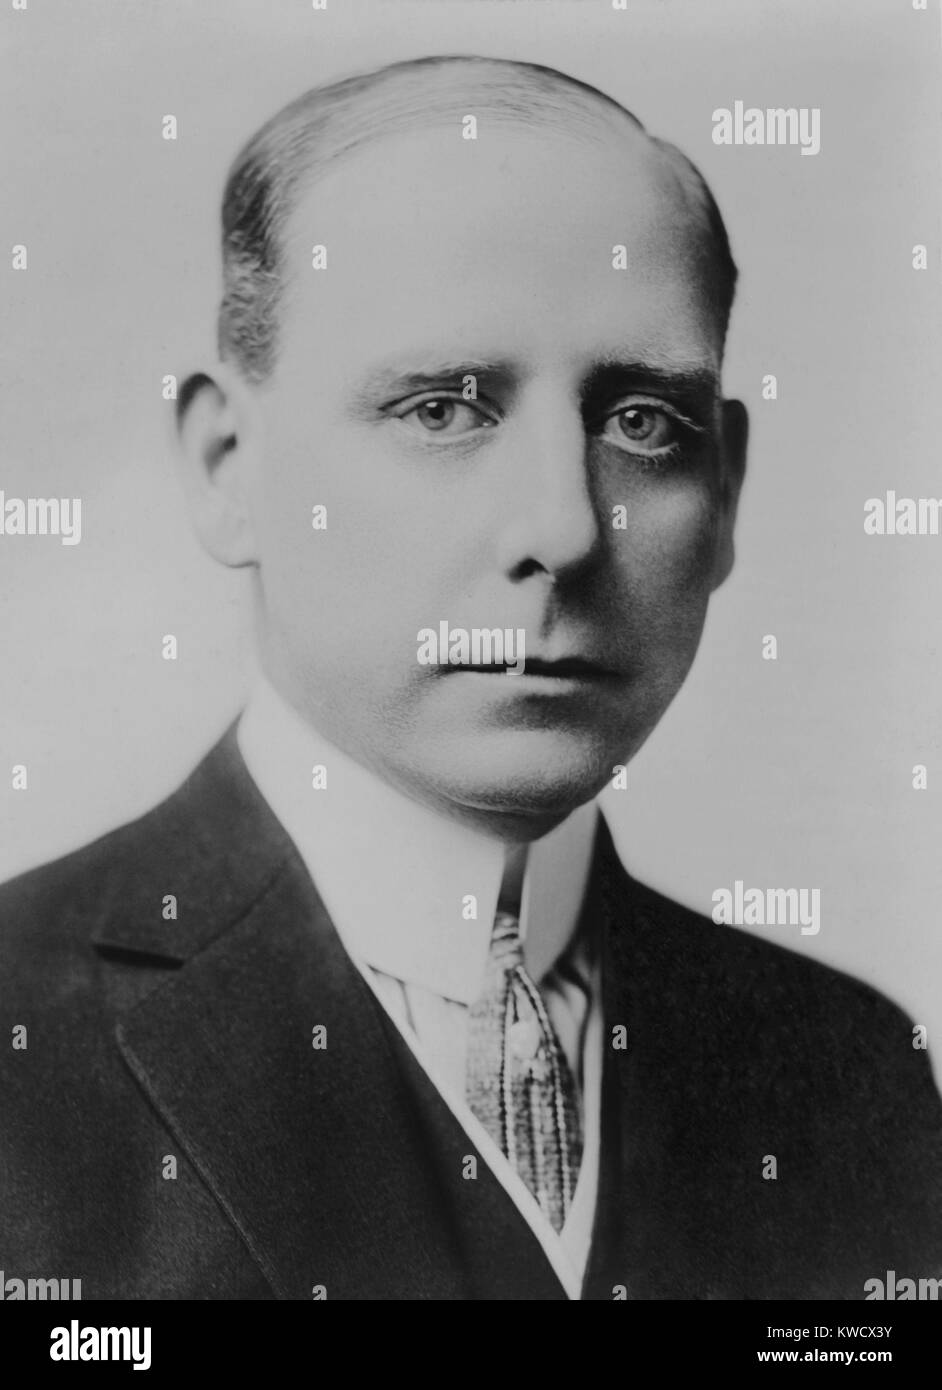 Frank Hague, powerful New Jersey political boss was Mayor of Jersey City from 1917-1947. He was portrayed by actor Stock Photo